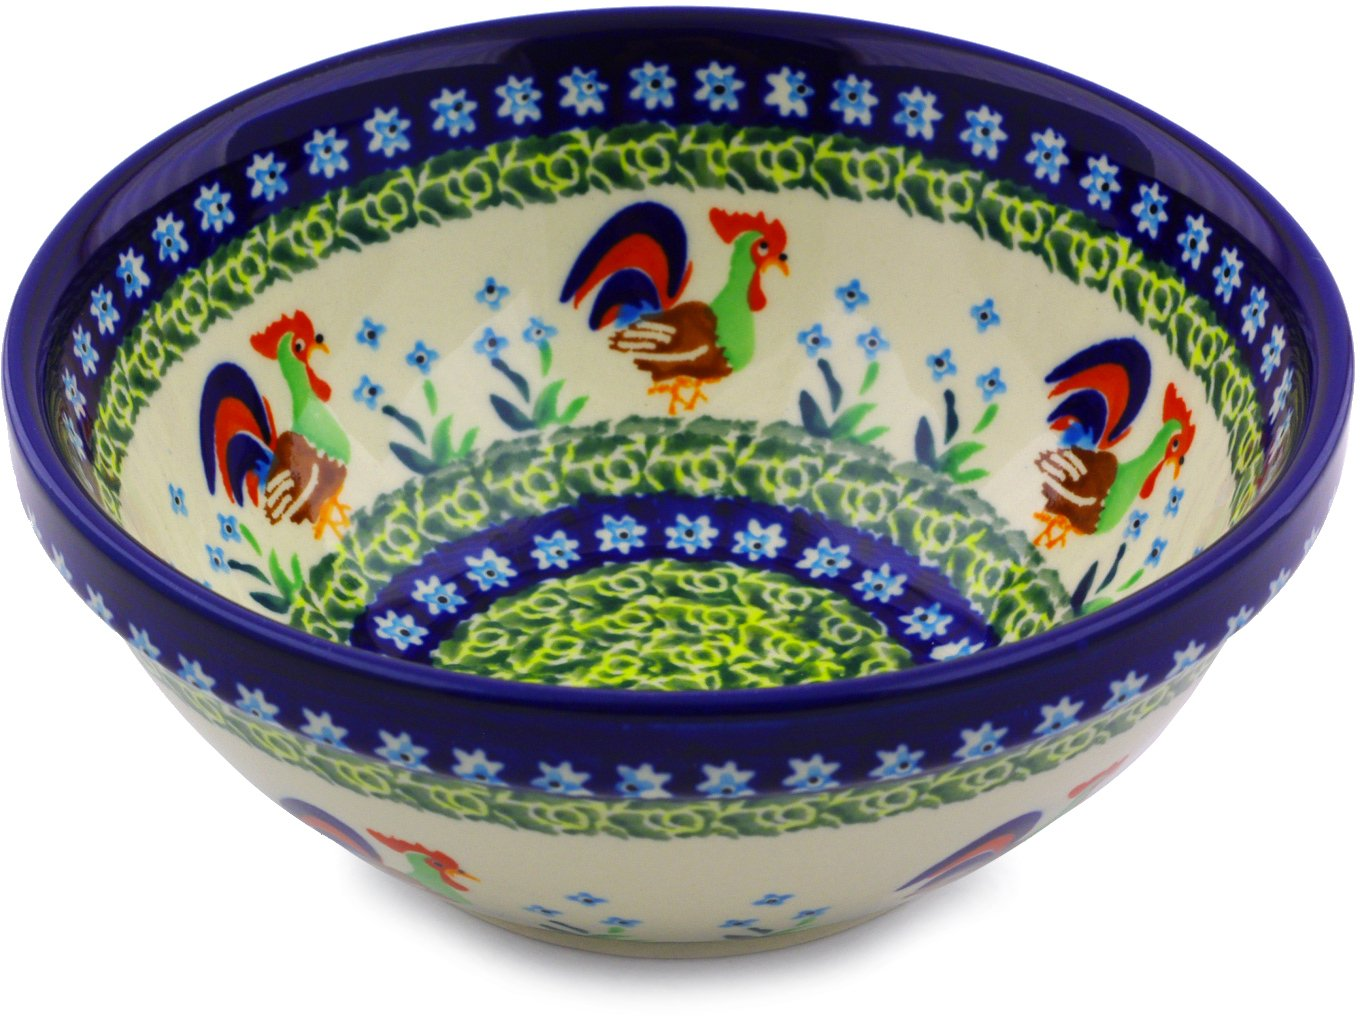 Polish Pottery Bowl 7-inch (Country Rooster Theme) Signature UNIKAT